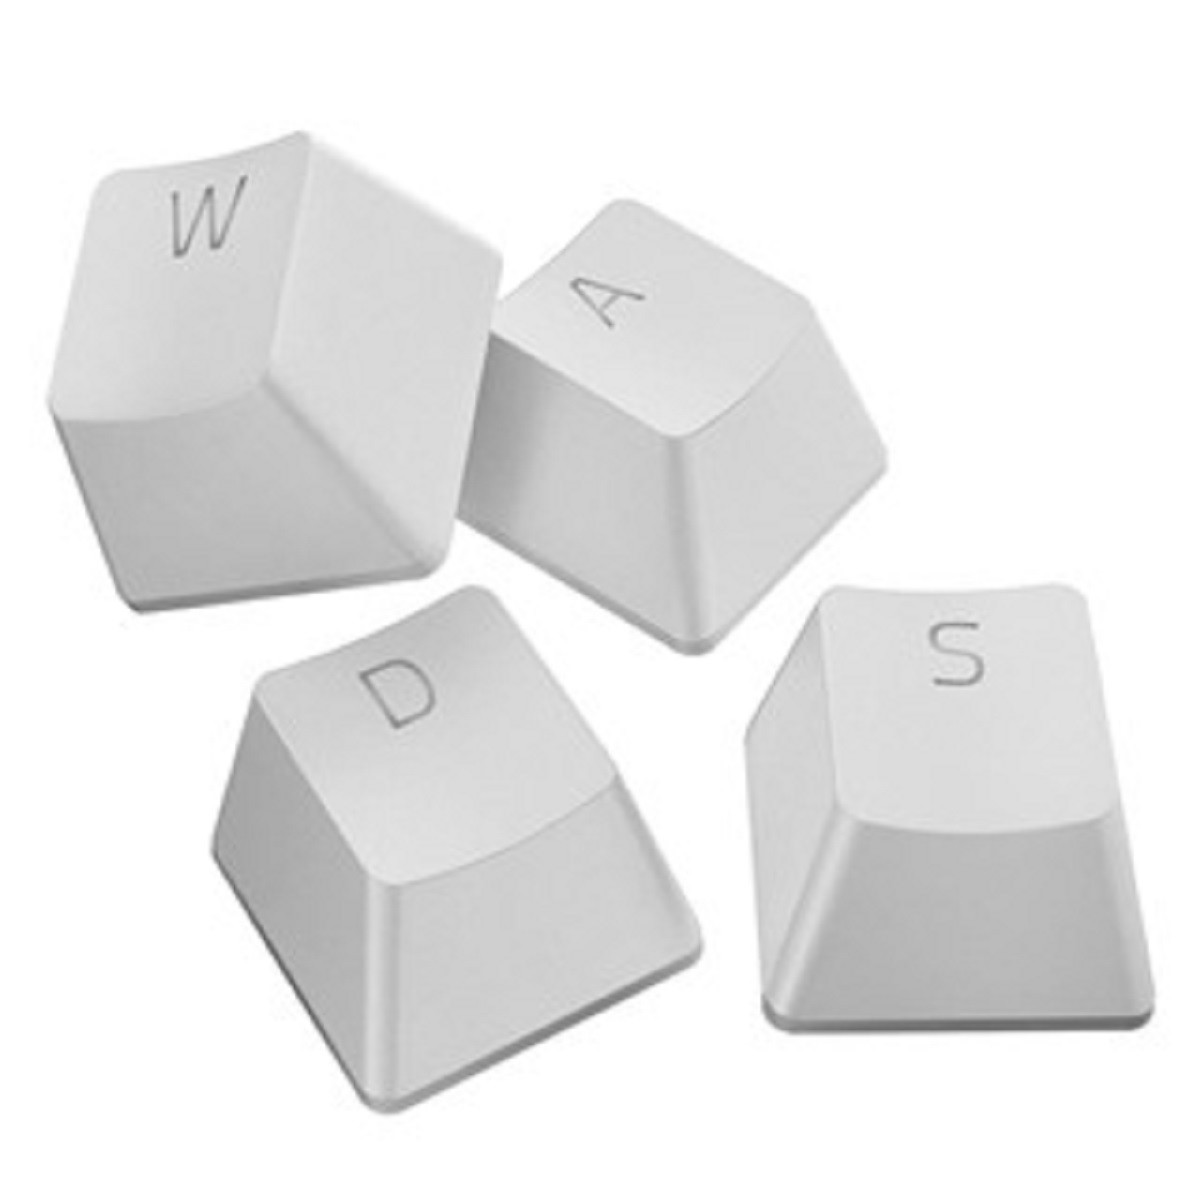 Keycap Razer PBT Upgrade Set - White